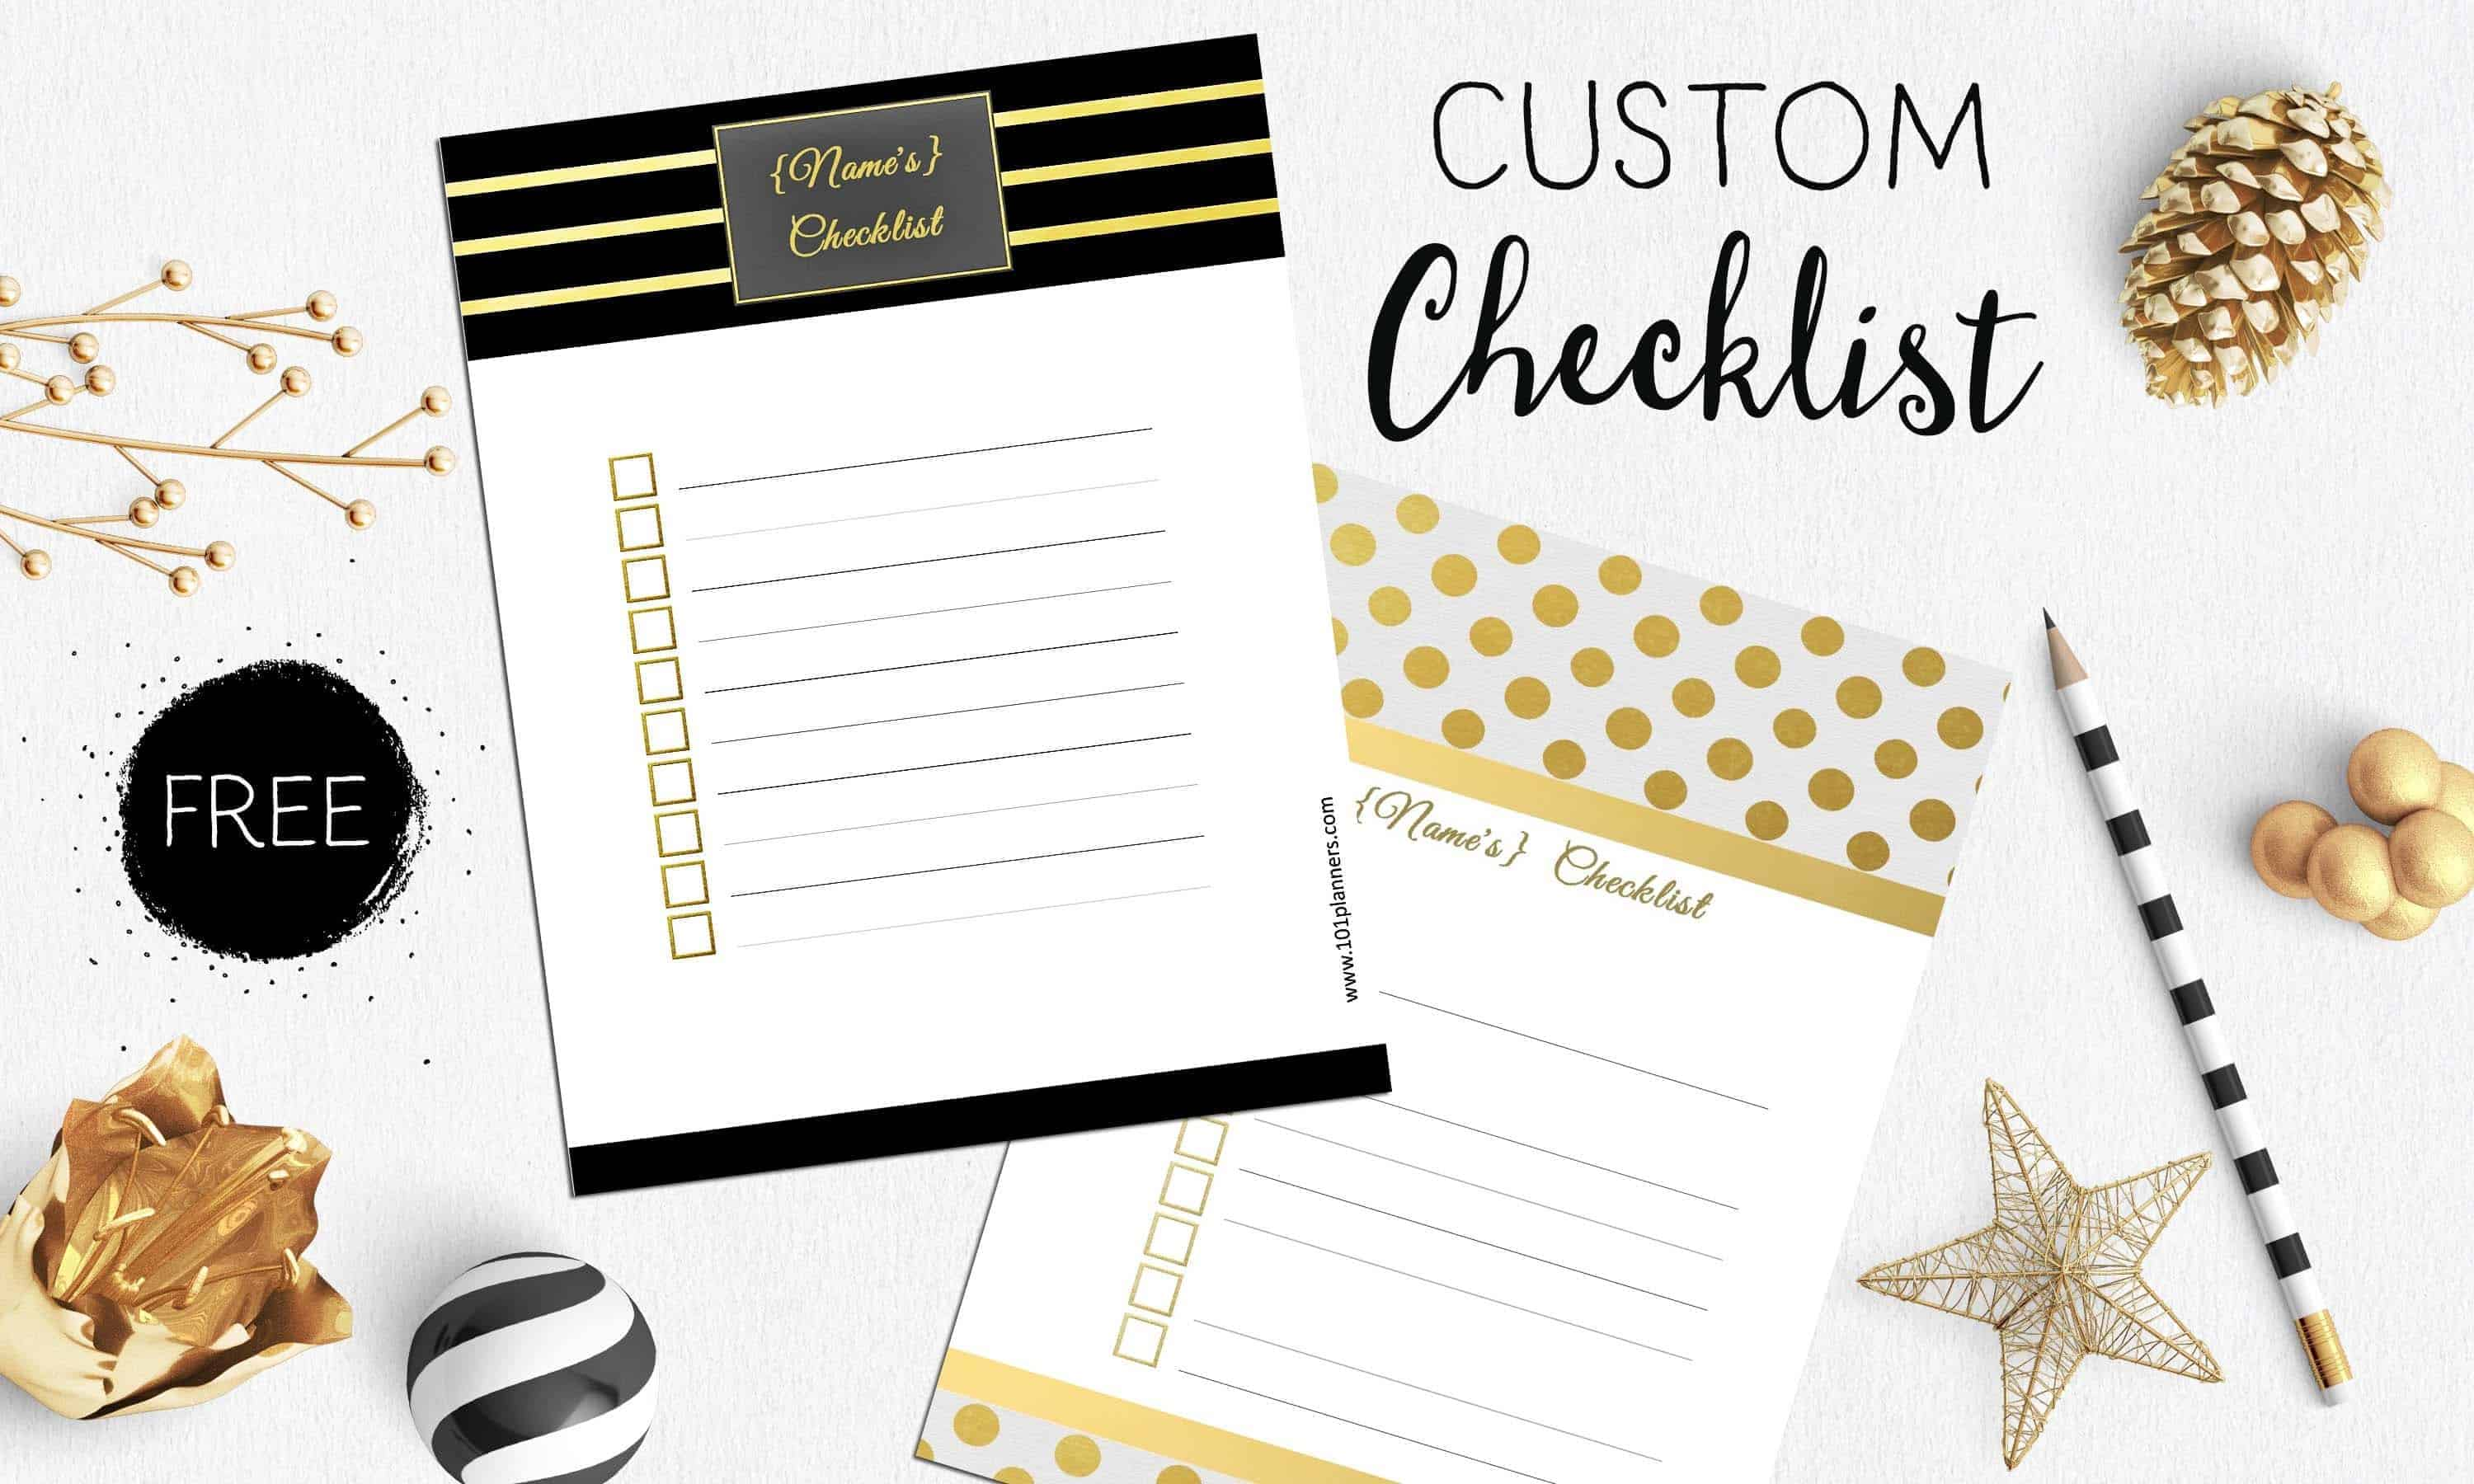 Free Checklist Template Use The Checklist Maker Online Or